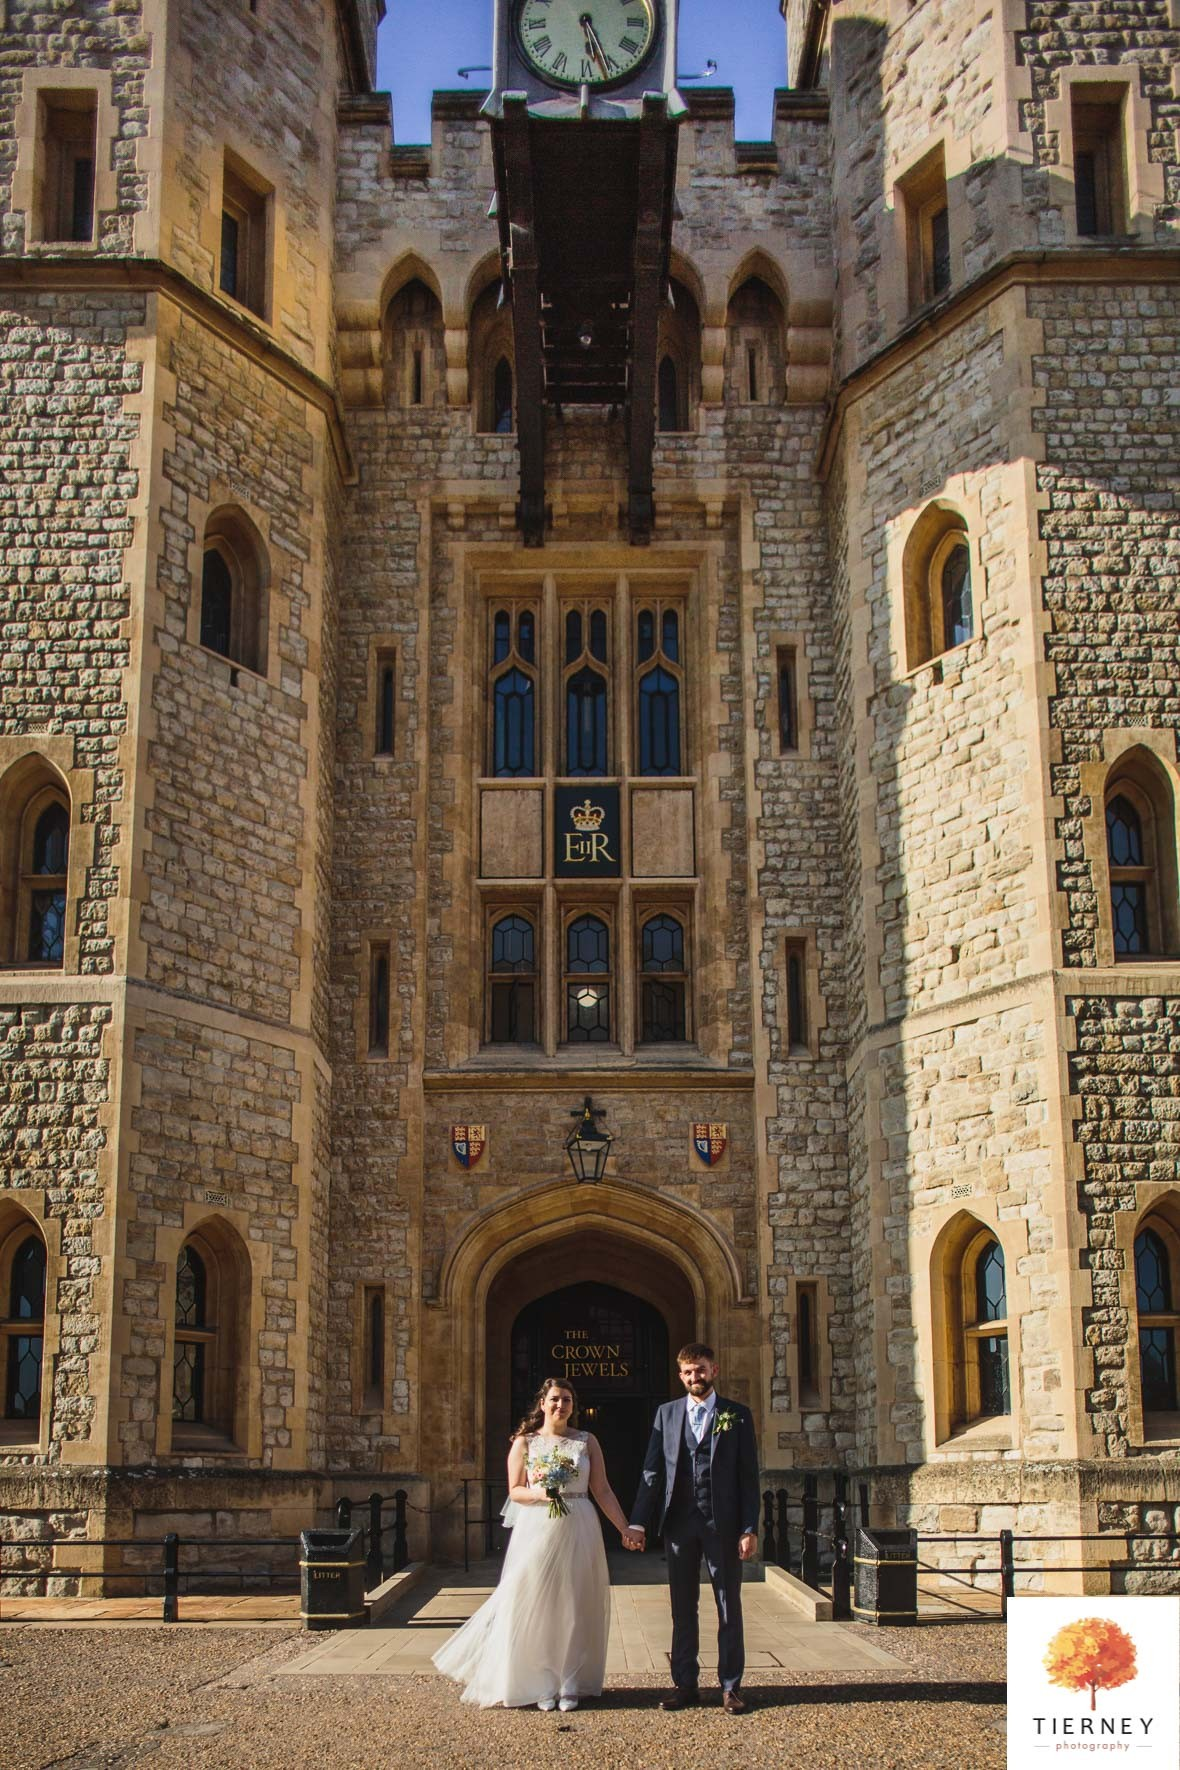 464-tower-of-london-wedding